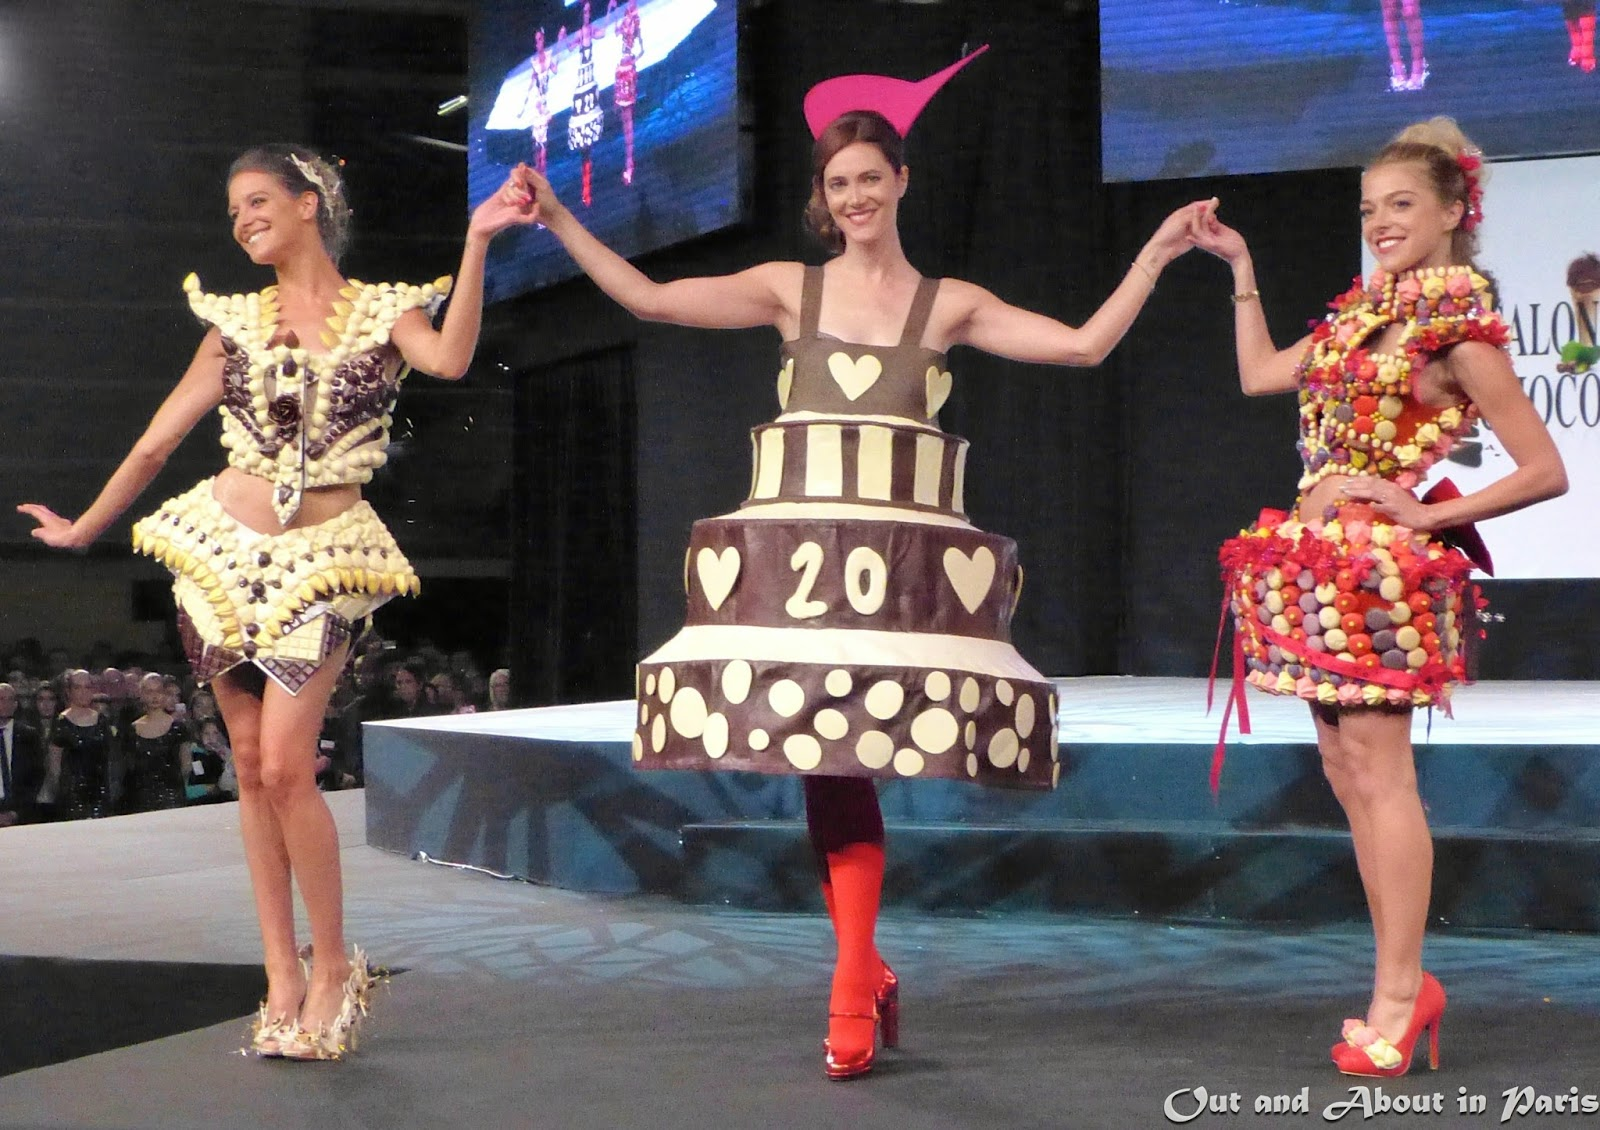 Salon Du Chocolat Nantes Chocolate Fashion Show At The 20th Annual Salon Du Chocolat In Paris